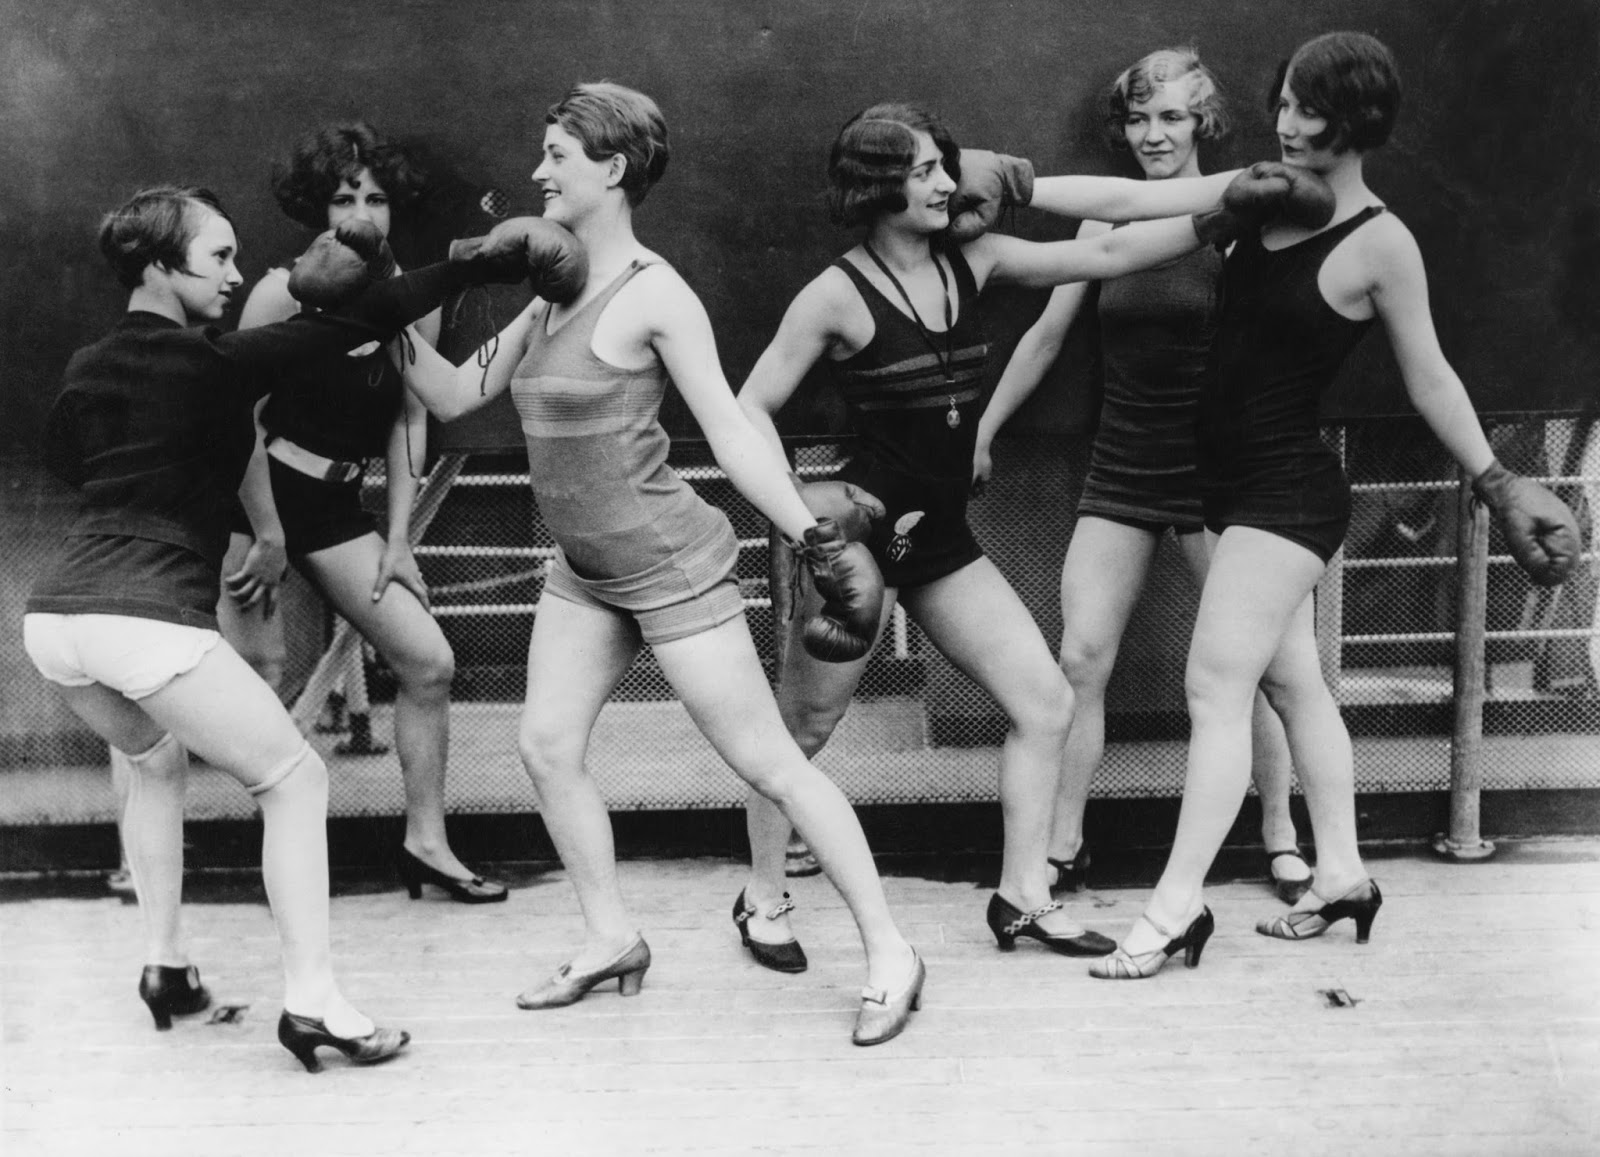 A group of women mock-boxing, ca  1920s ~ vintage everyday